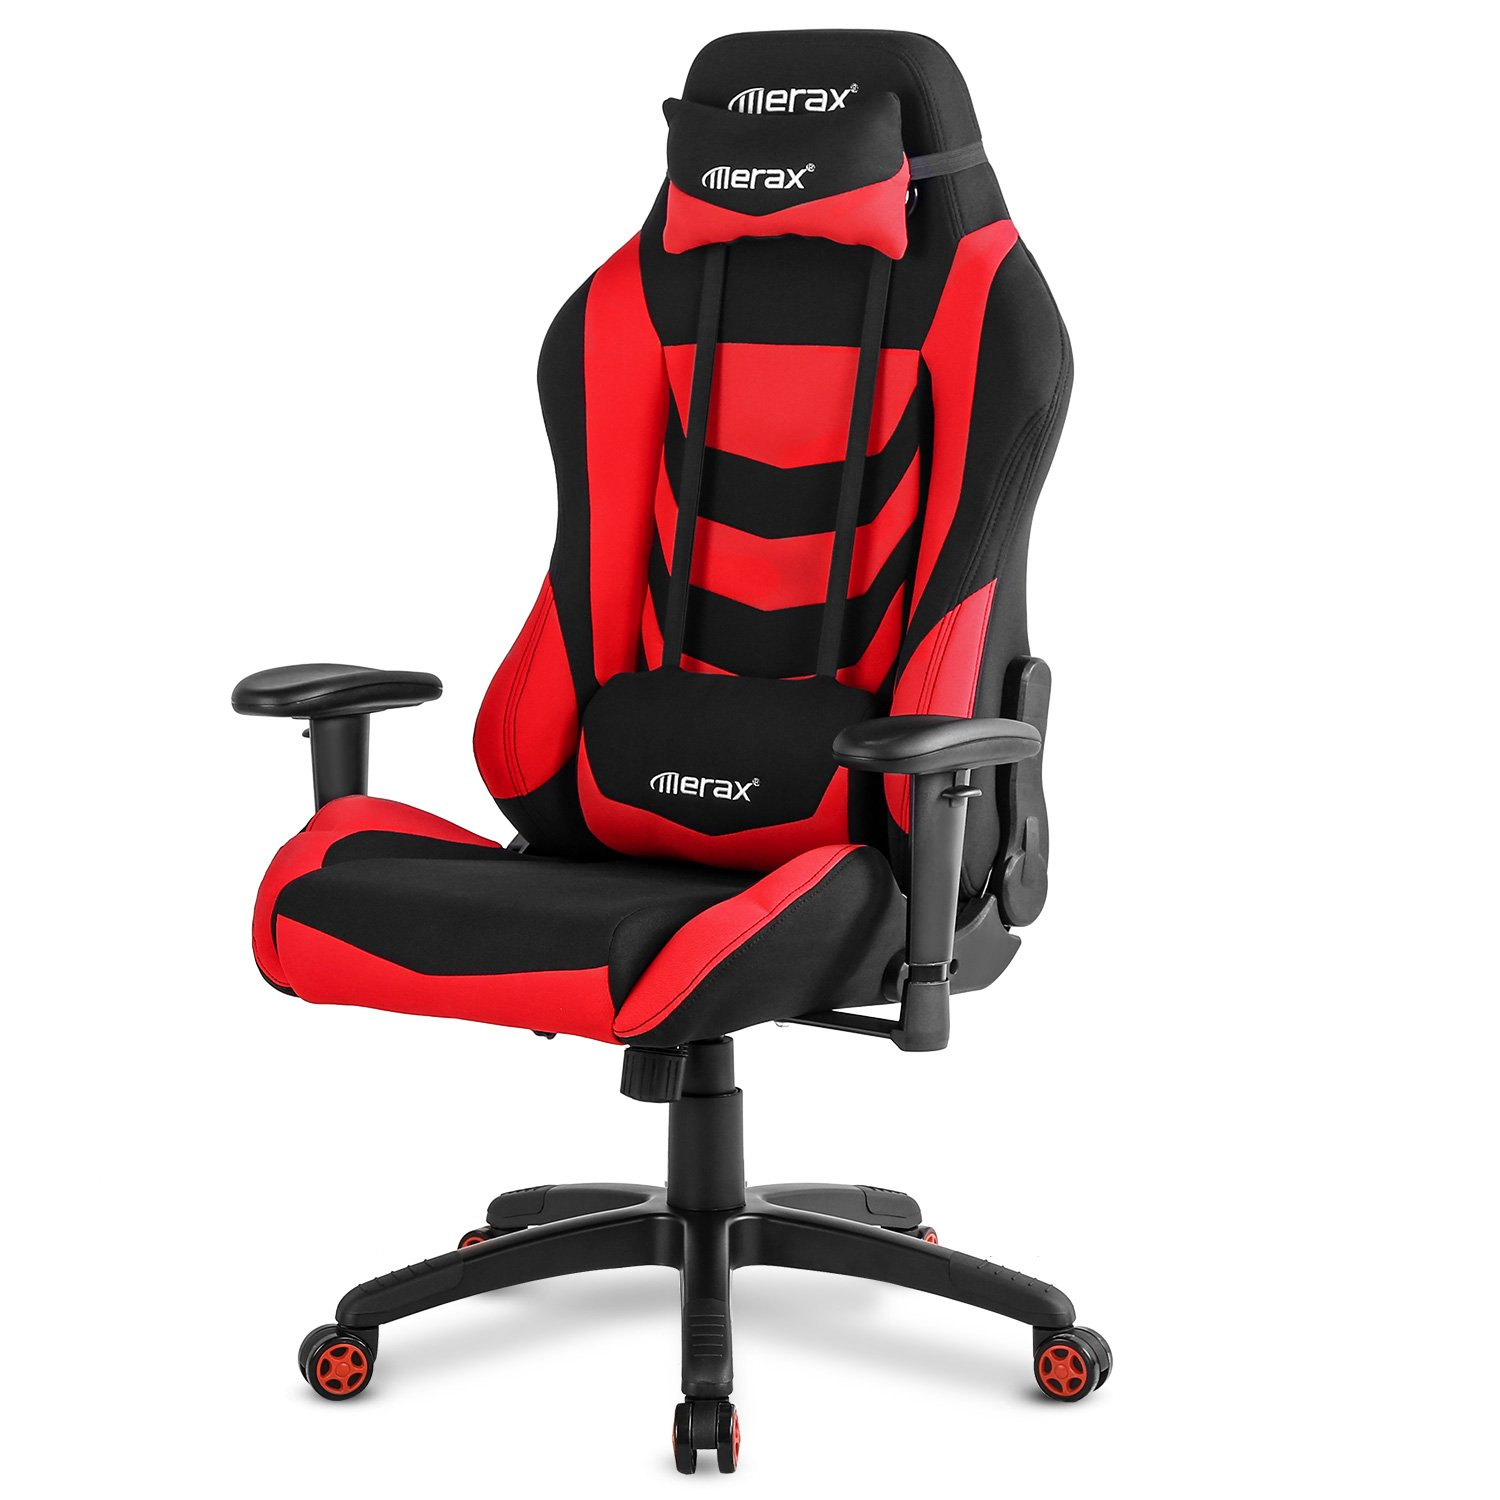 Merax Racing Style Office Chair Gaming Ergonomic with Adjustable Armrests Home Office Computer Chair (Red)